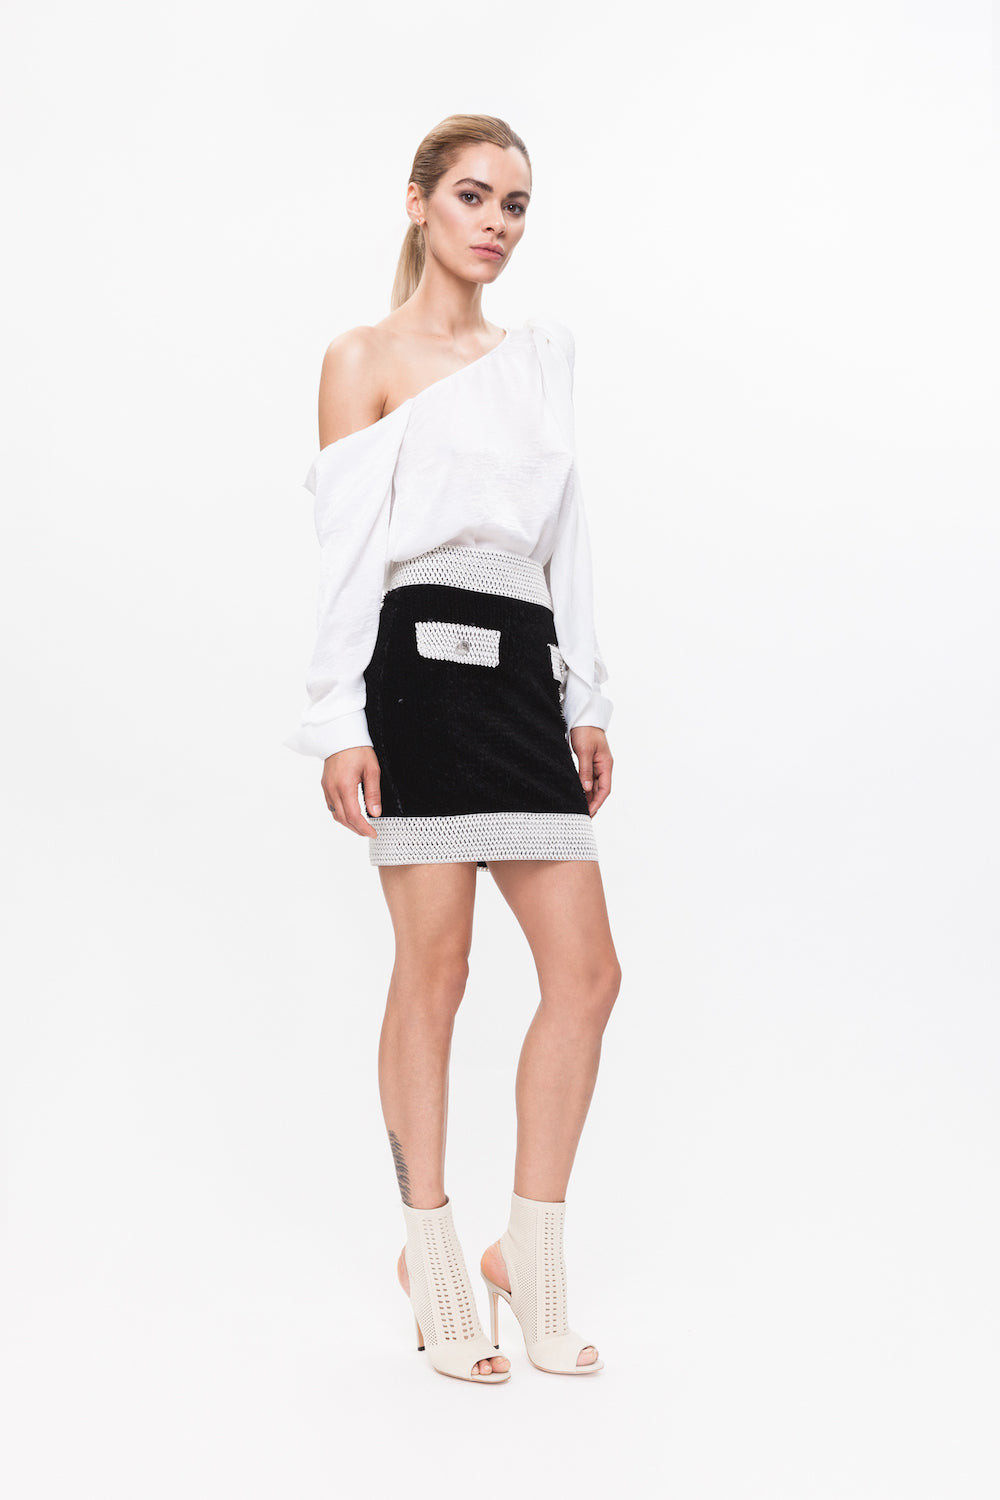 ZOEY black skirt